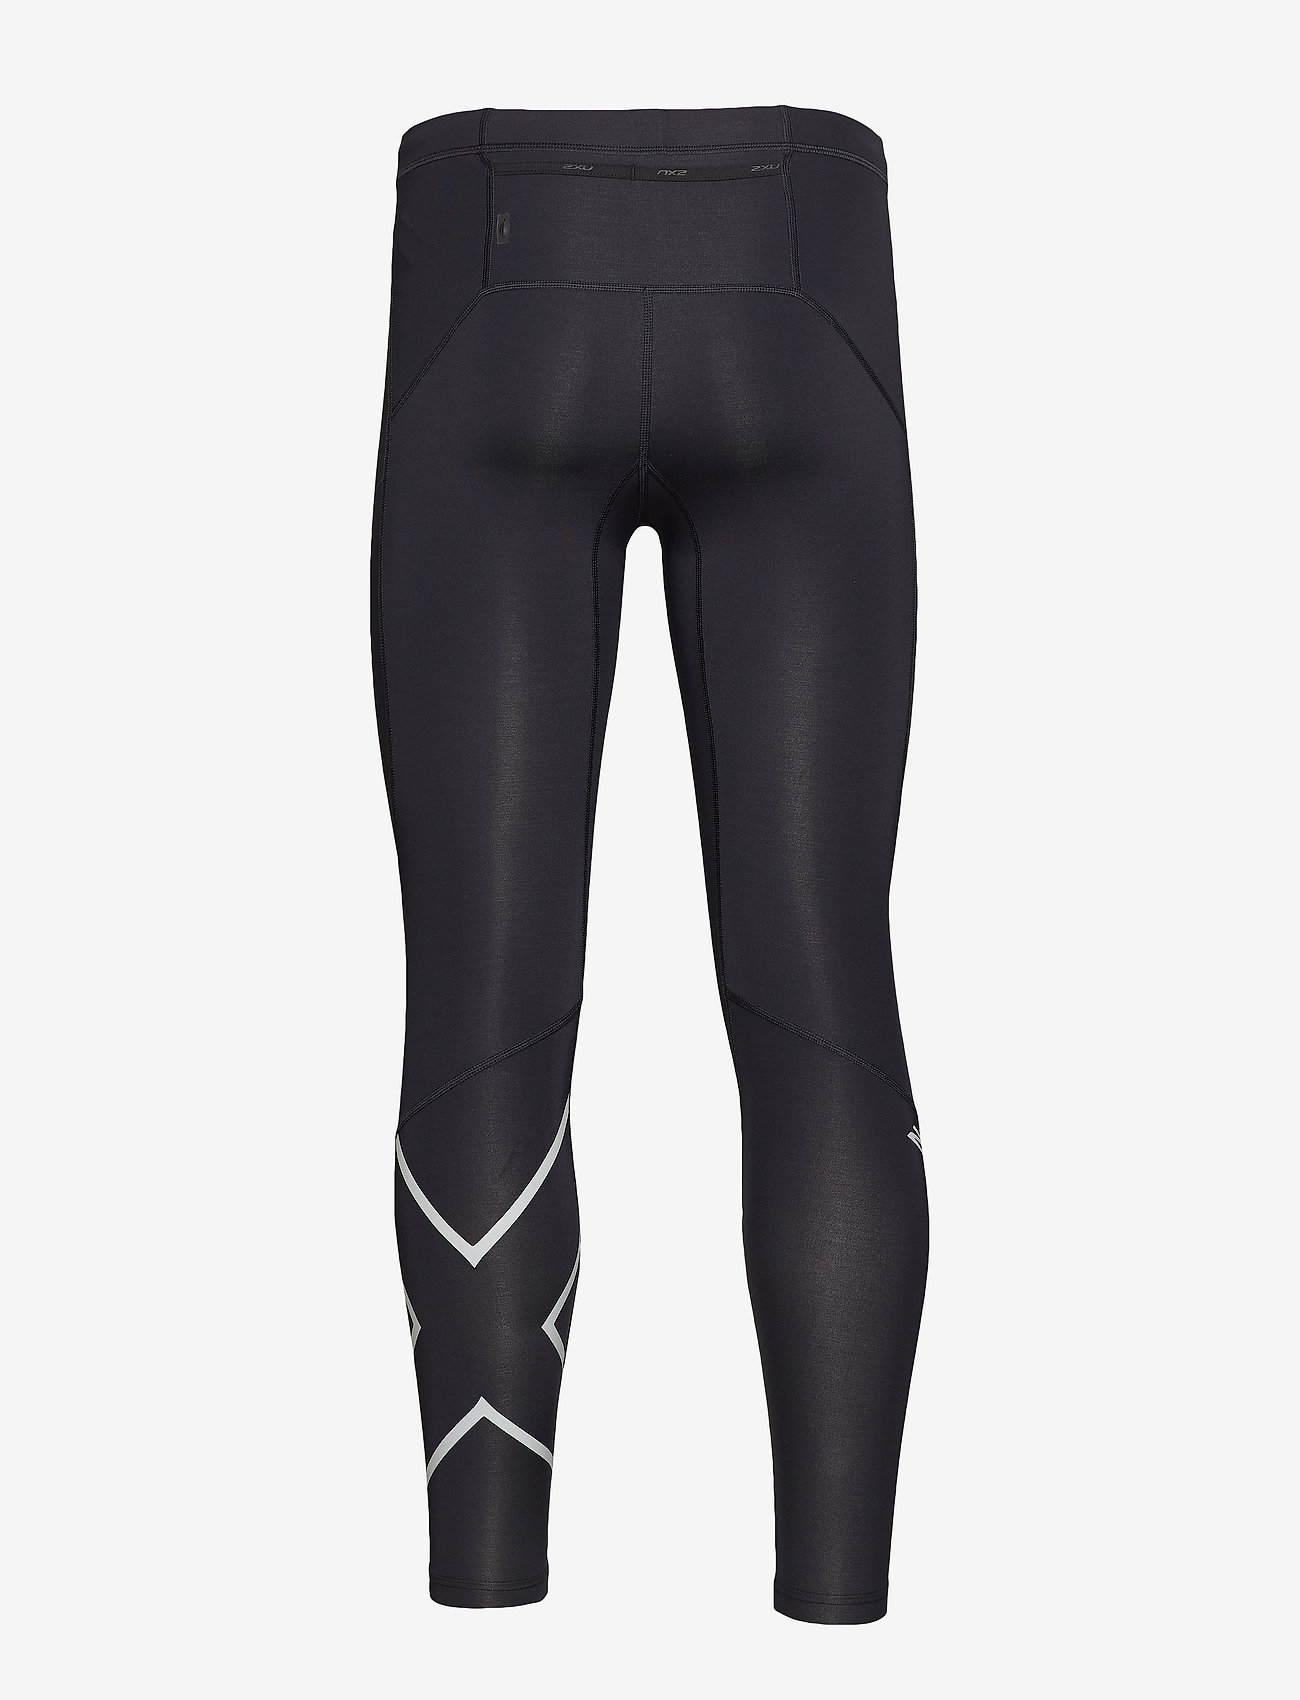 2XU - Run Comp Tights w/Back Storage-M - løbe- og træningstights - black/silver reflective - 1